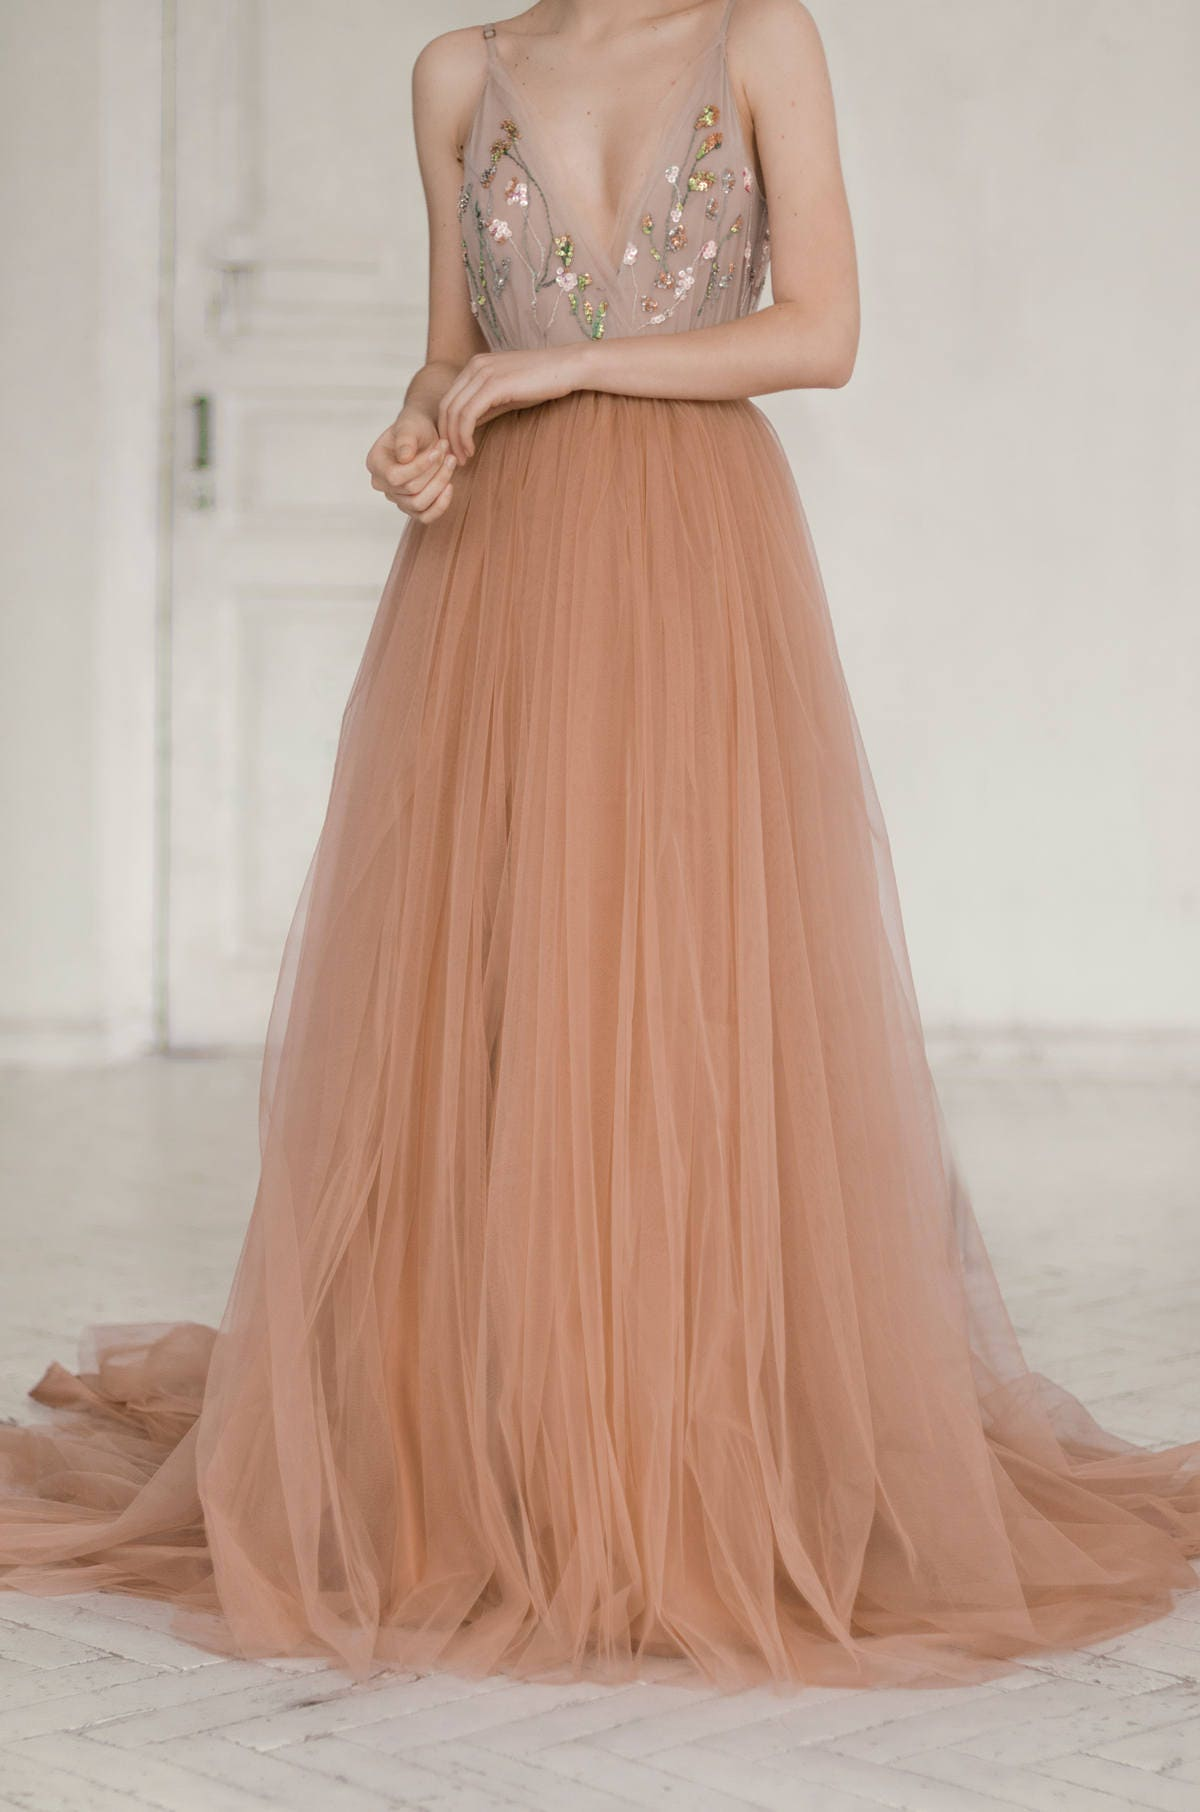 Tulle wedding dress / hand embroidered wedding gown